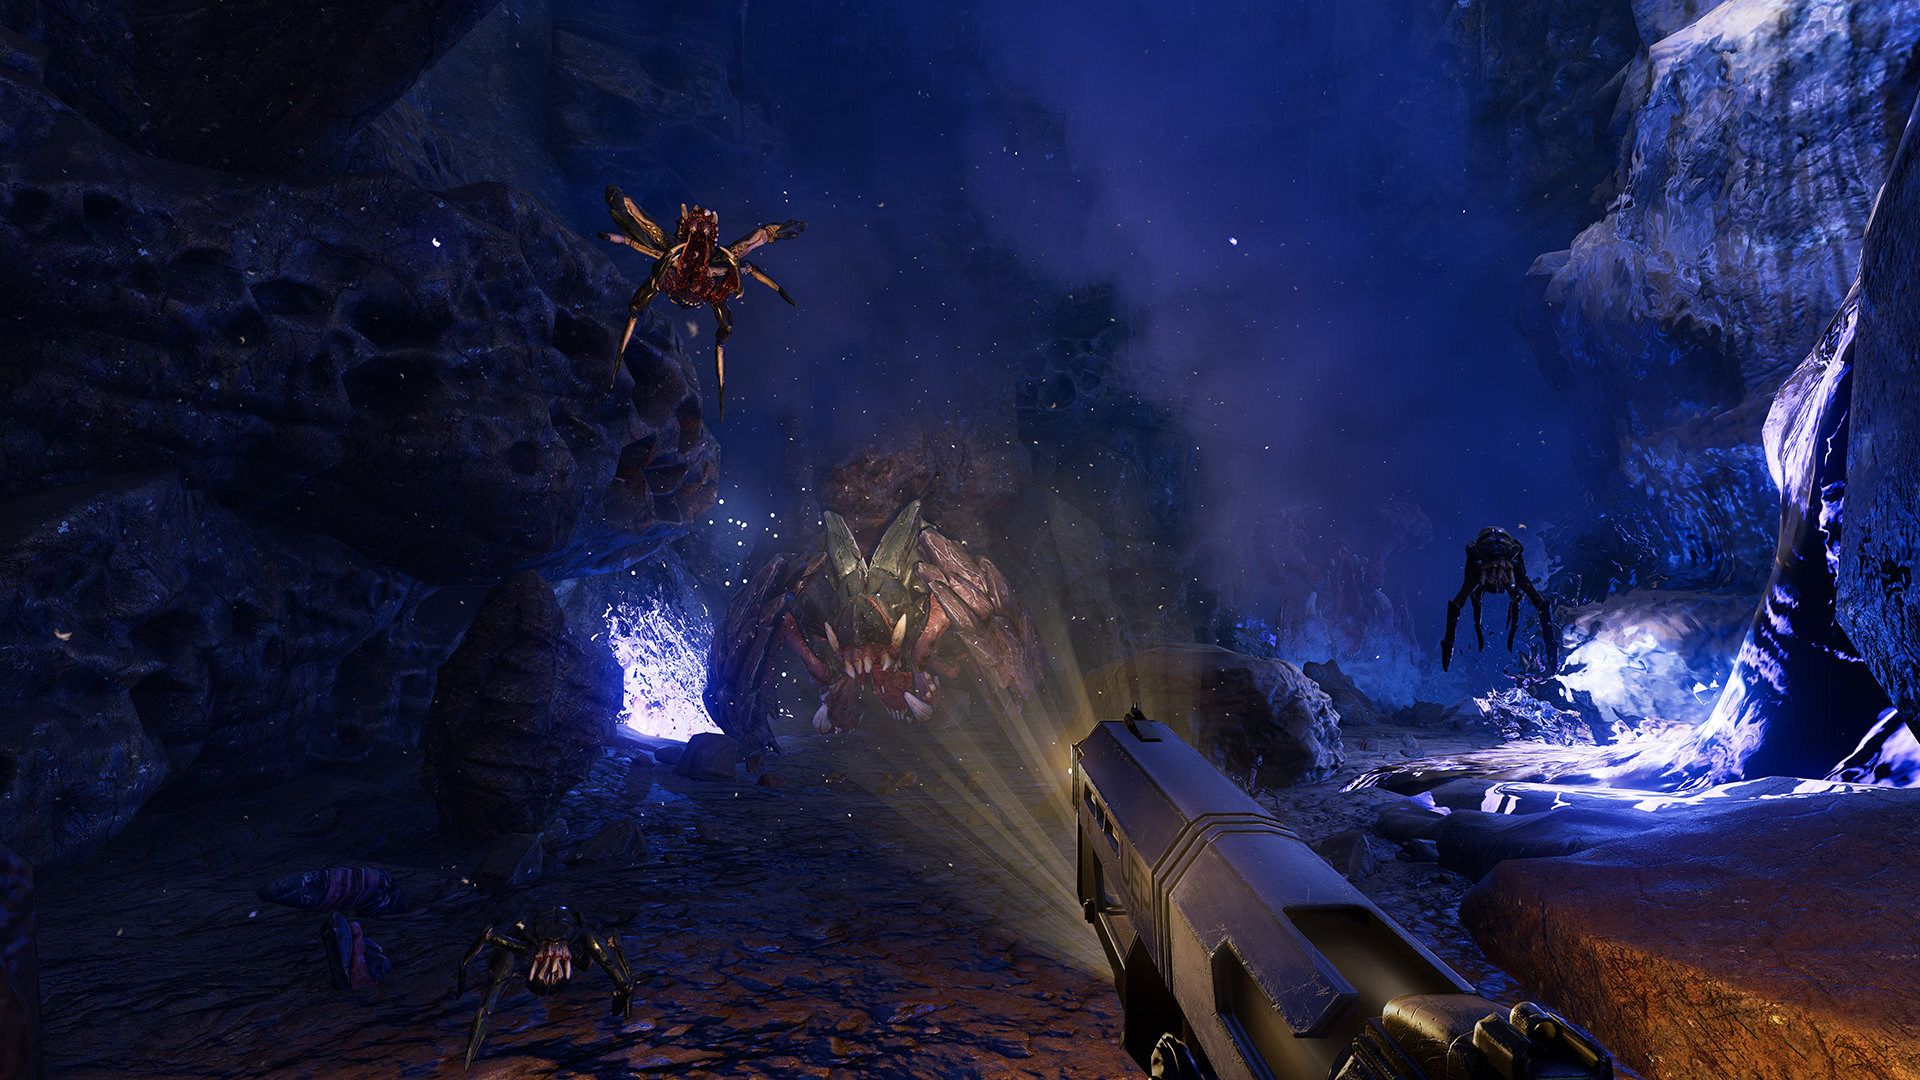 Farpoint looks like the next notable PlayStation VR game screenshot